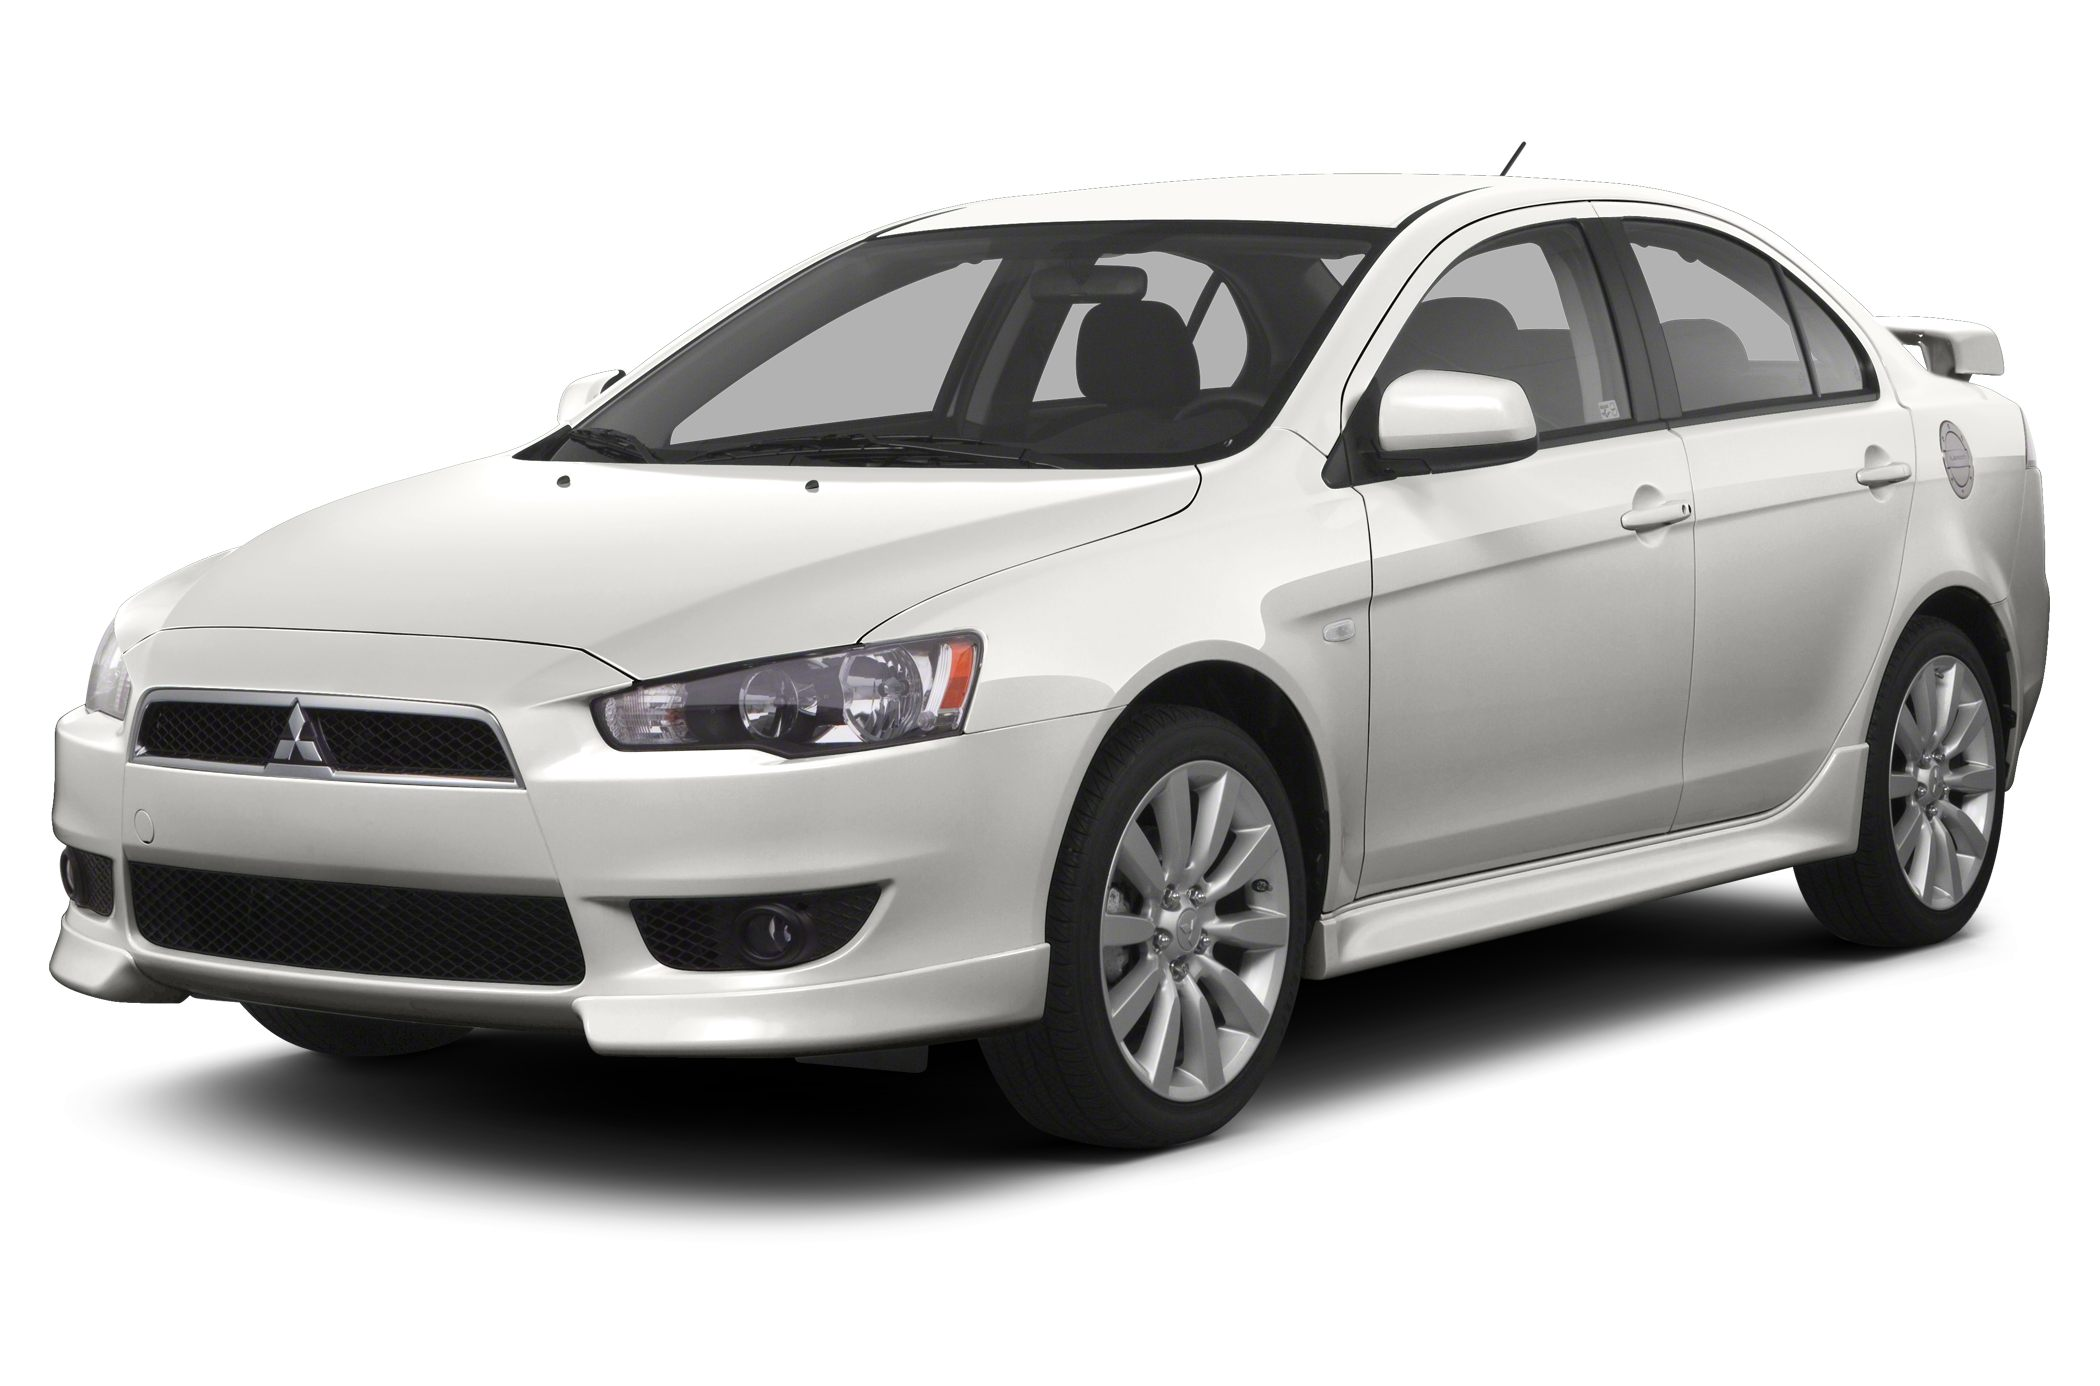 2013 Mitsubishi Lancer New Car Test Drive